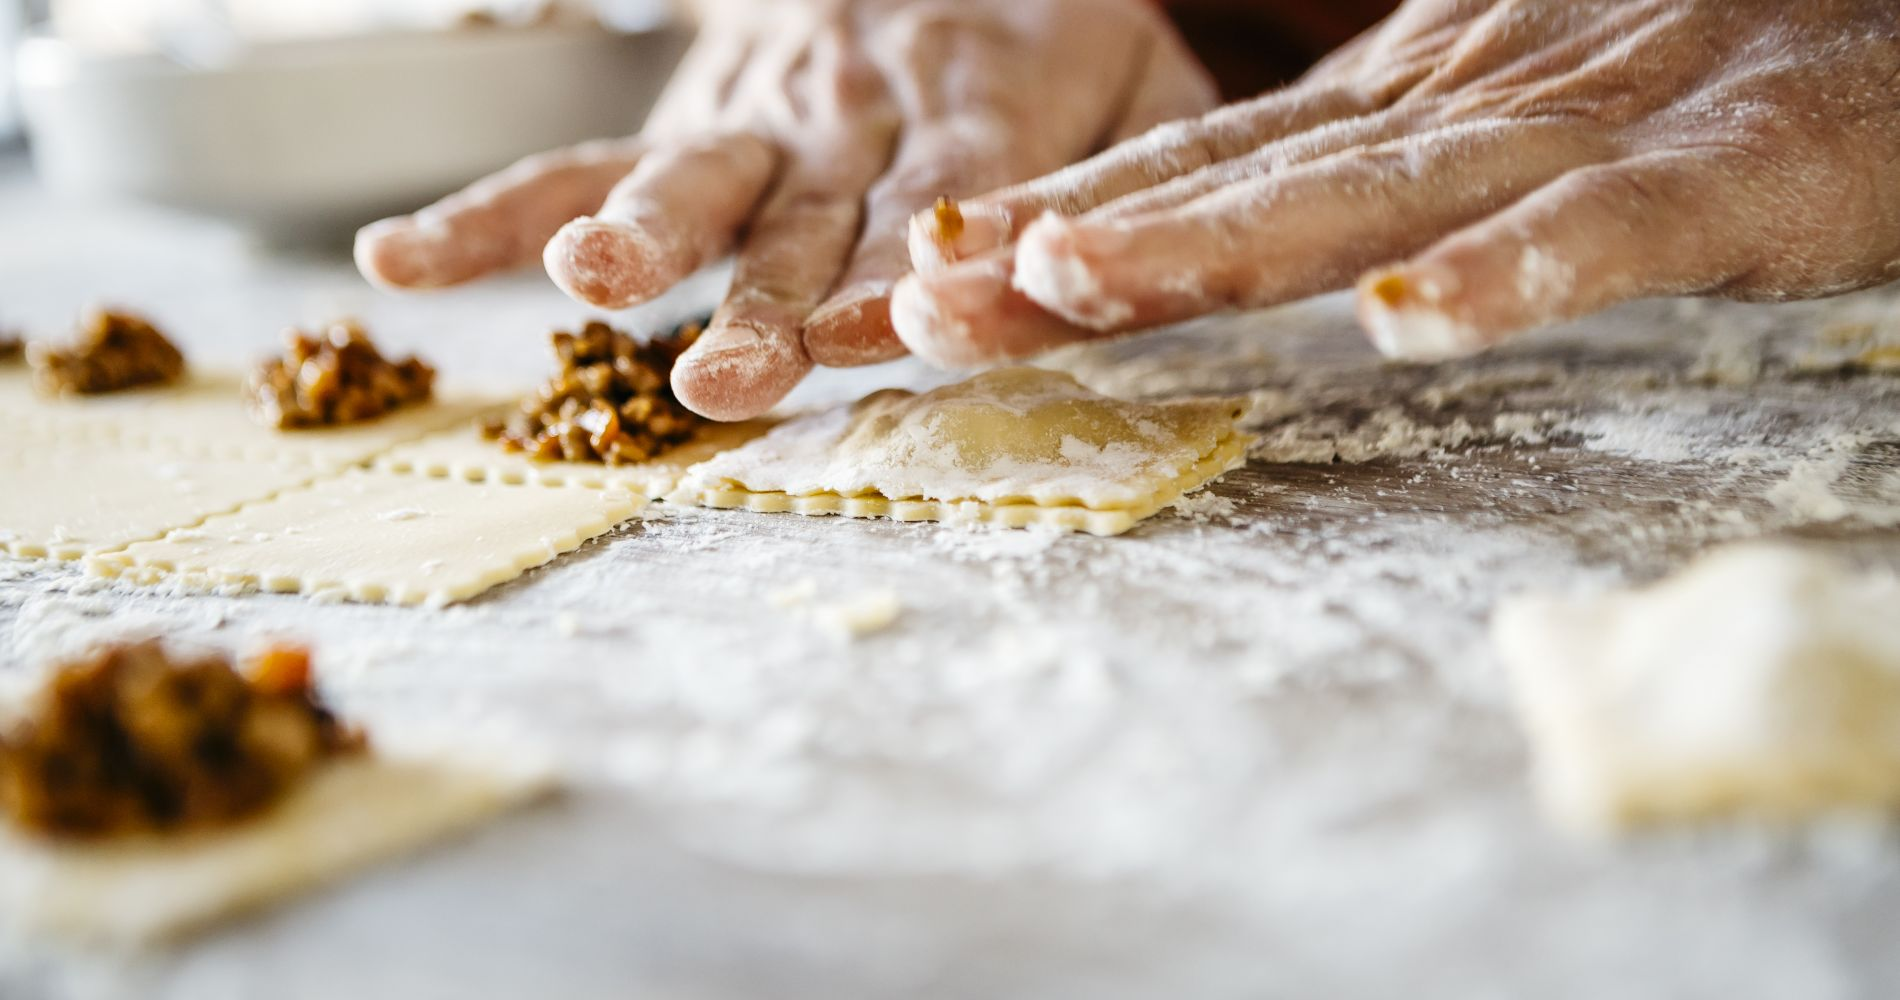 Pasta-Making Class with a Local Chef in Rome